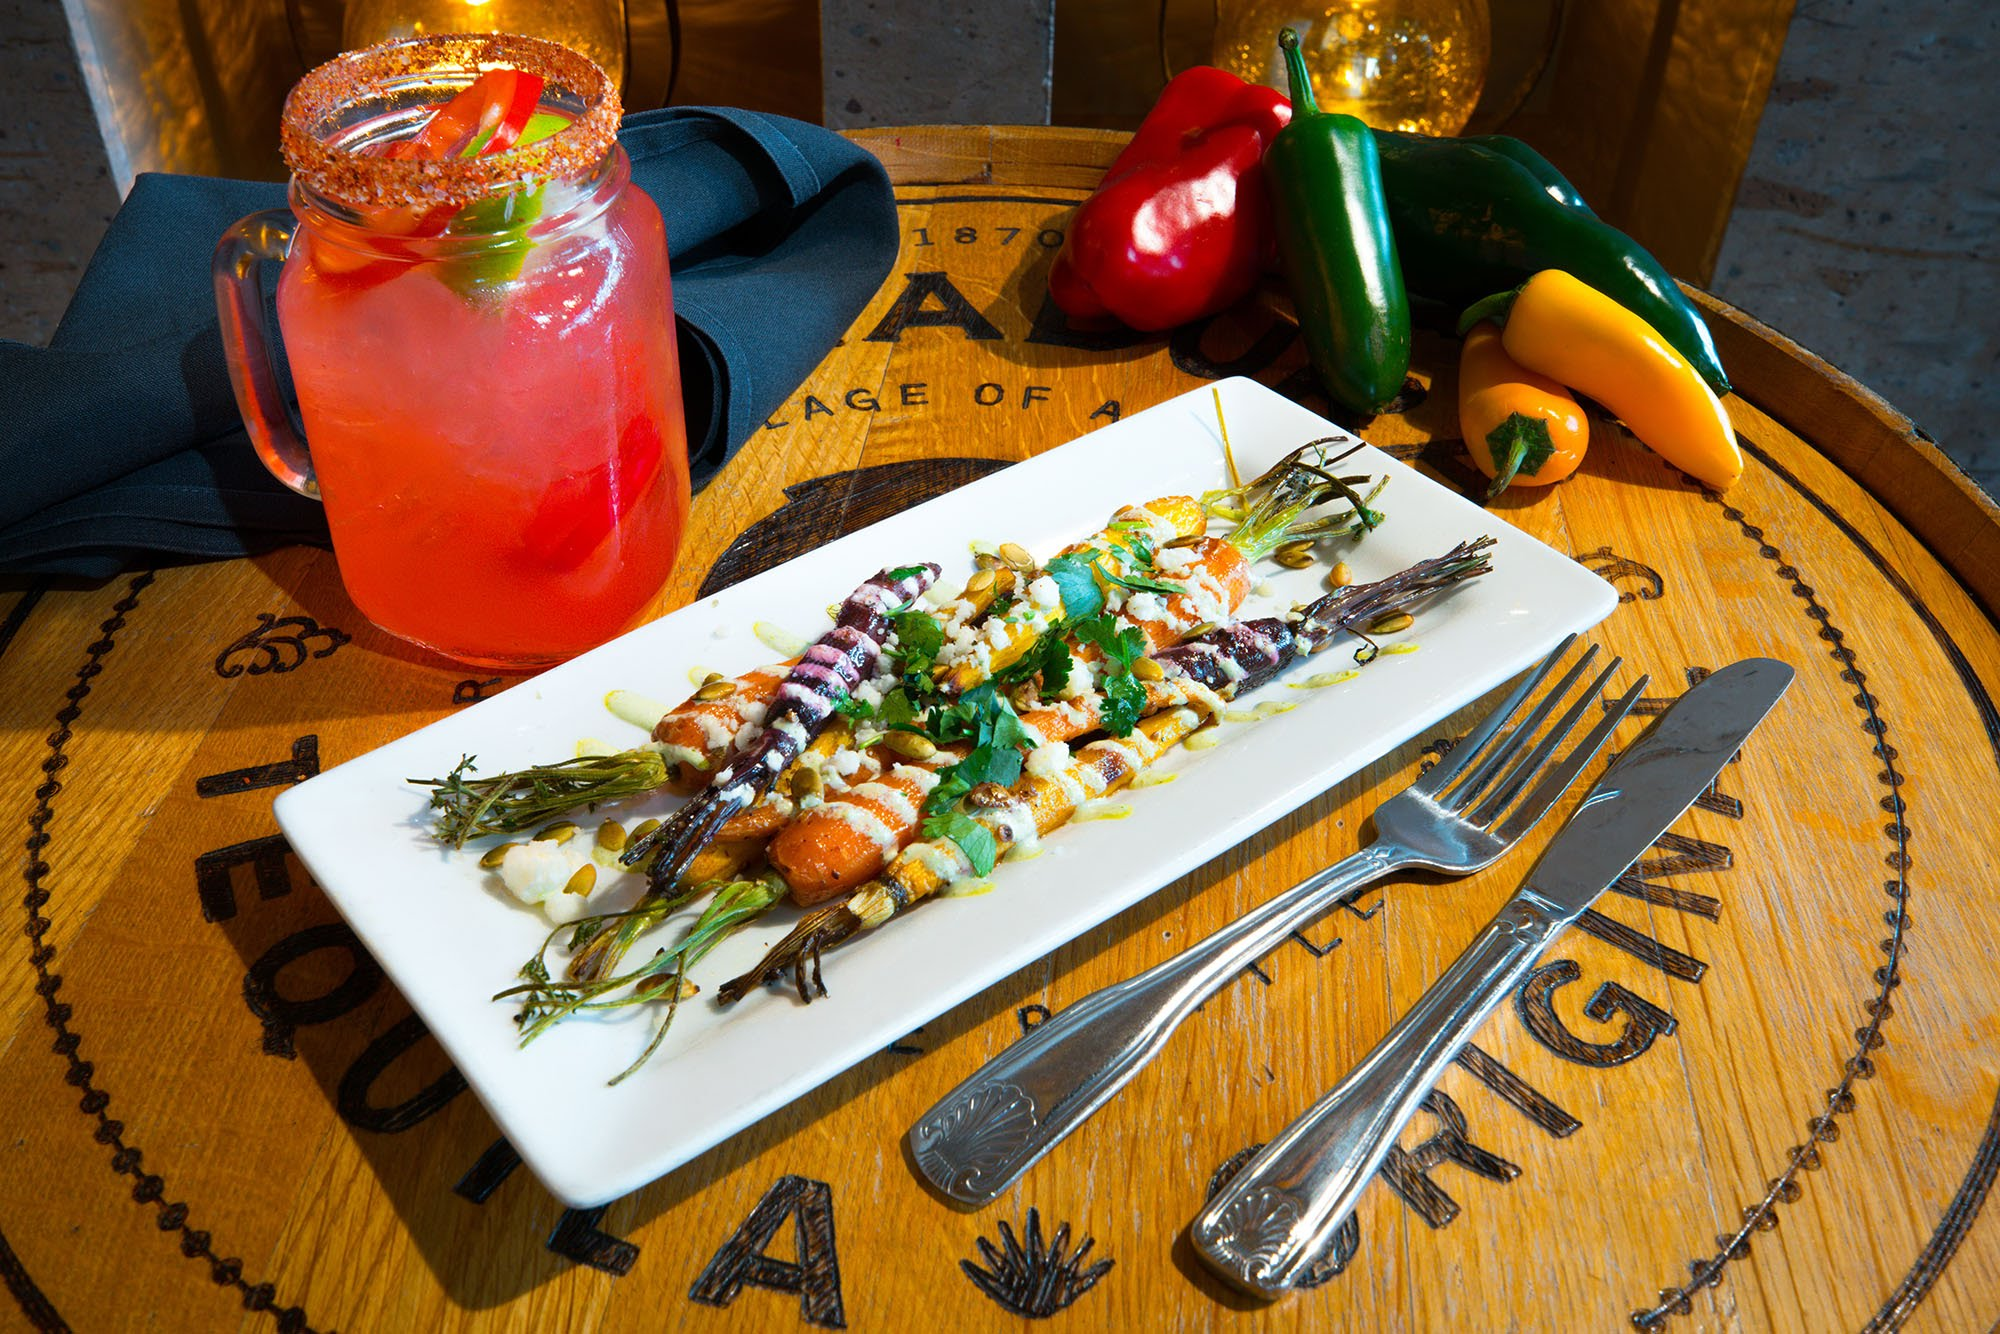 Agave Cocina & Tequila Asparagus